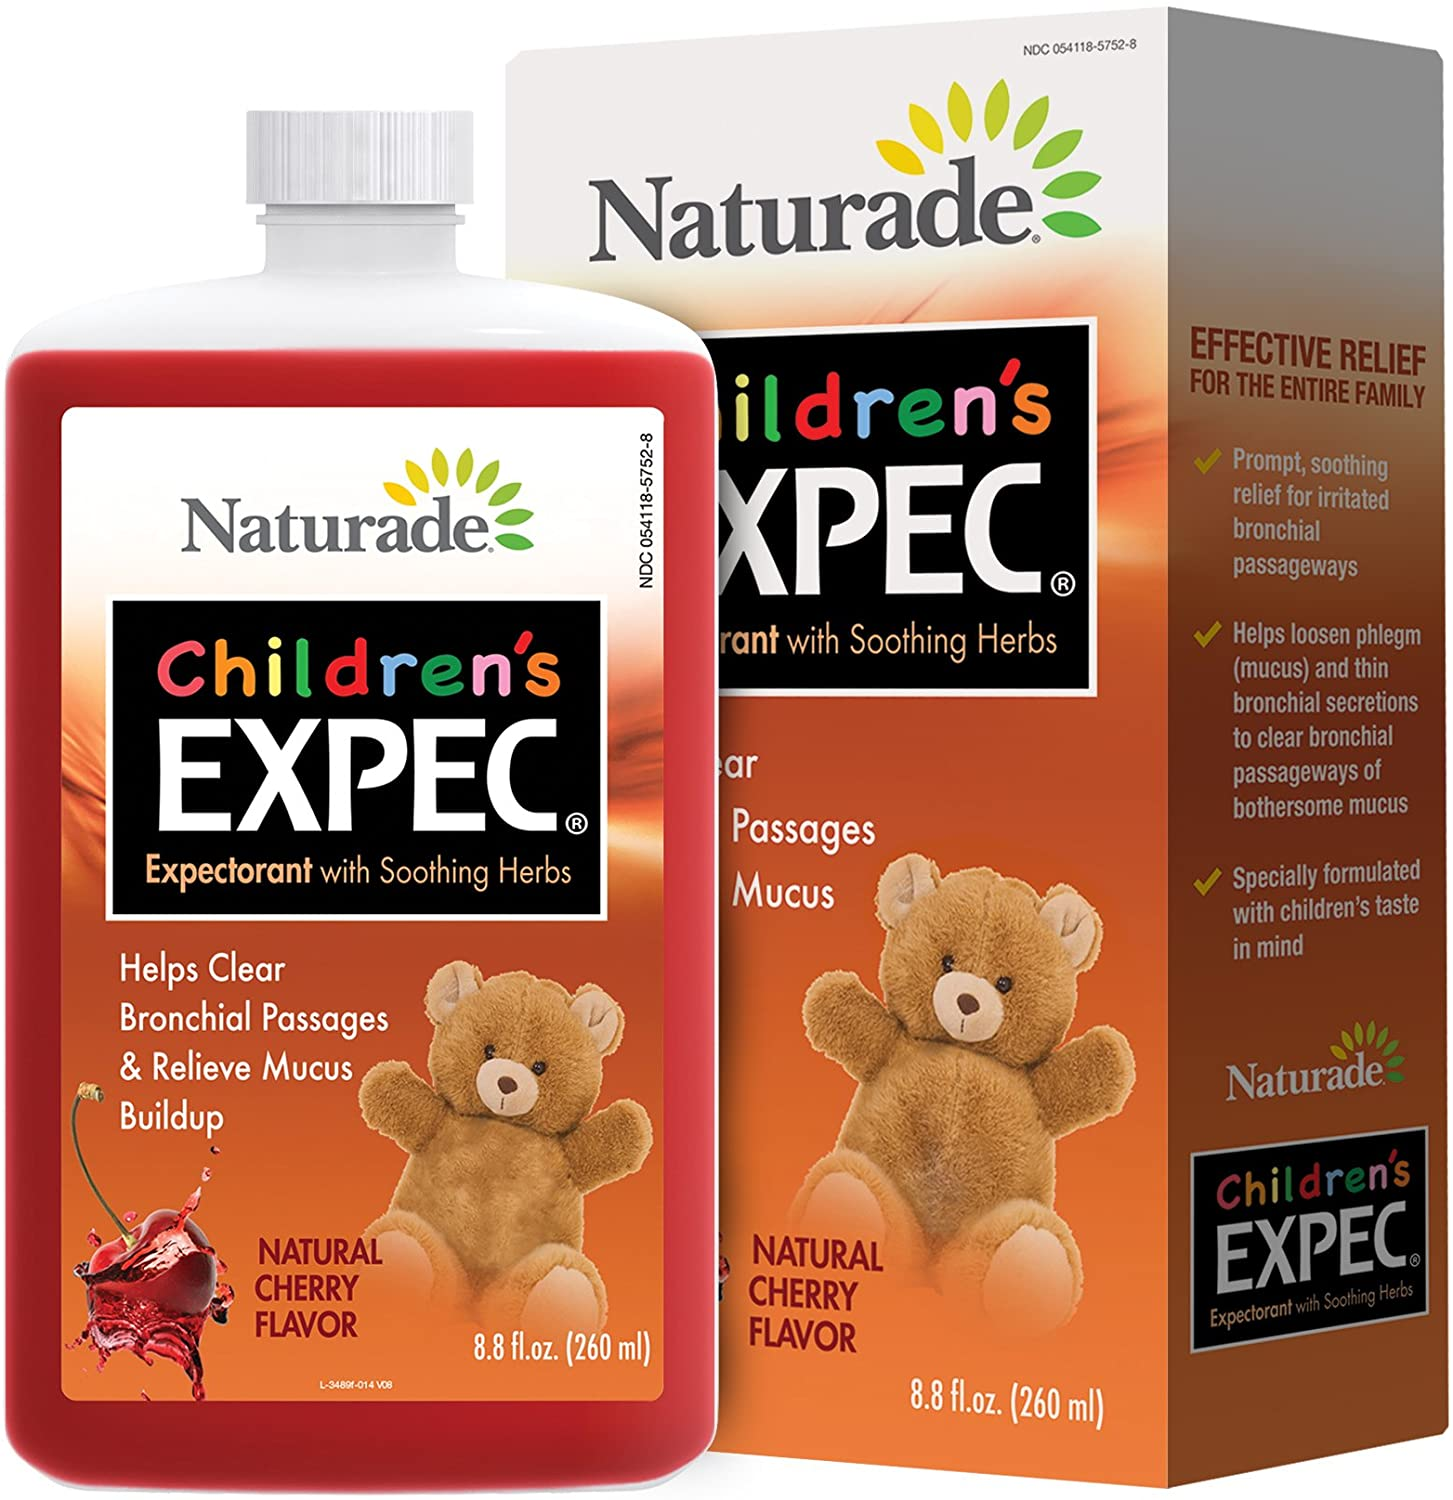 Naturade, Children's Expectorant 8.8oz